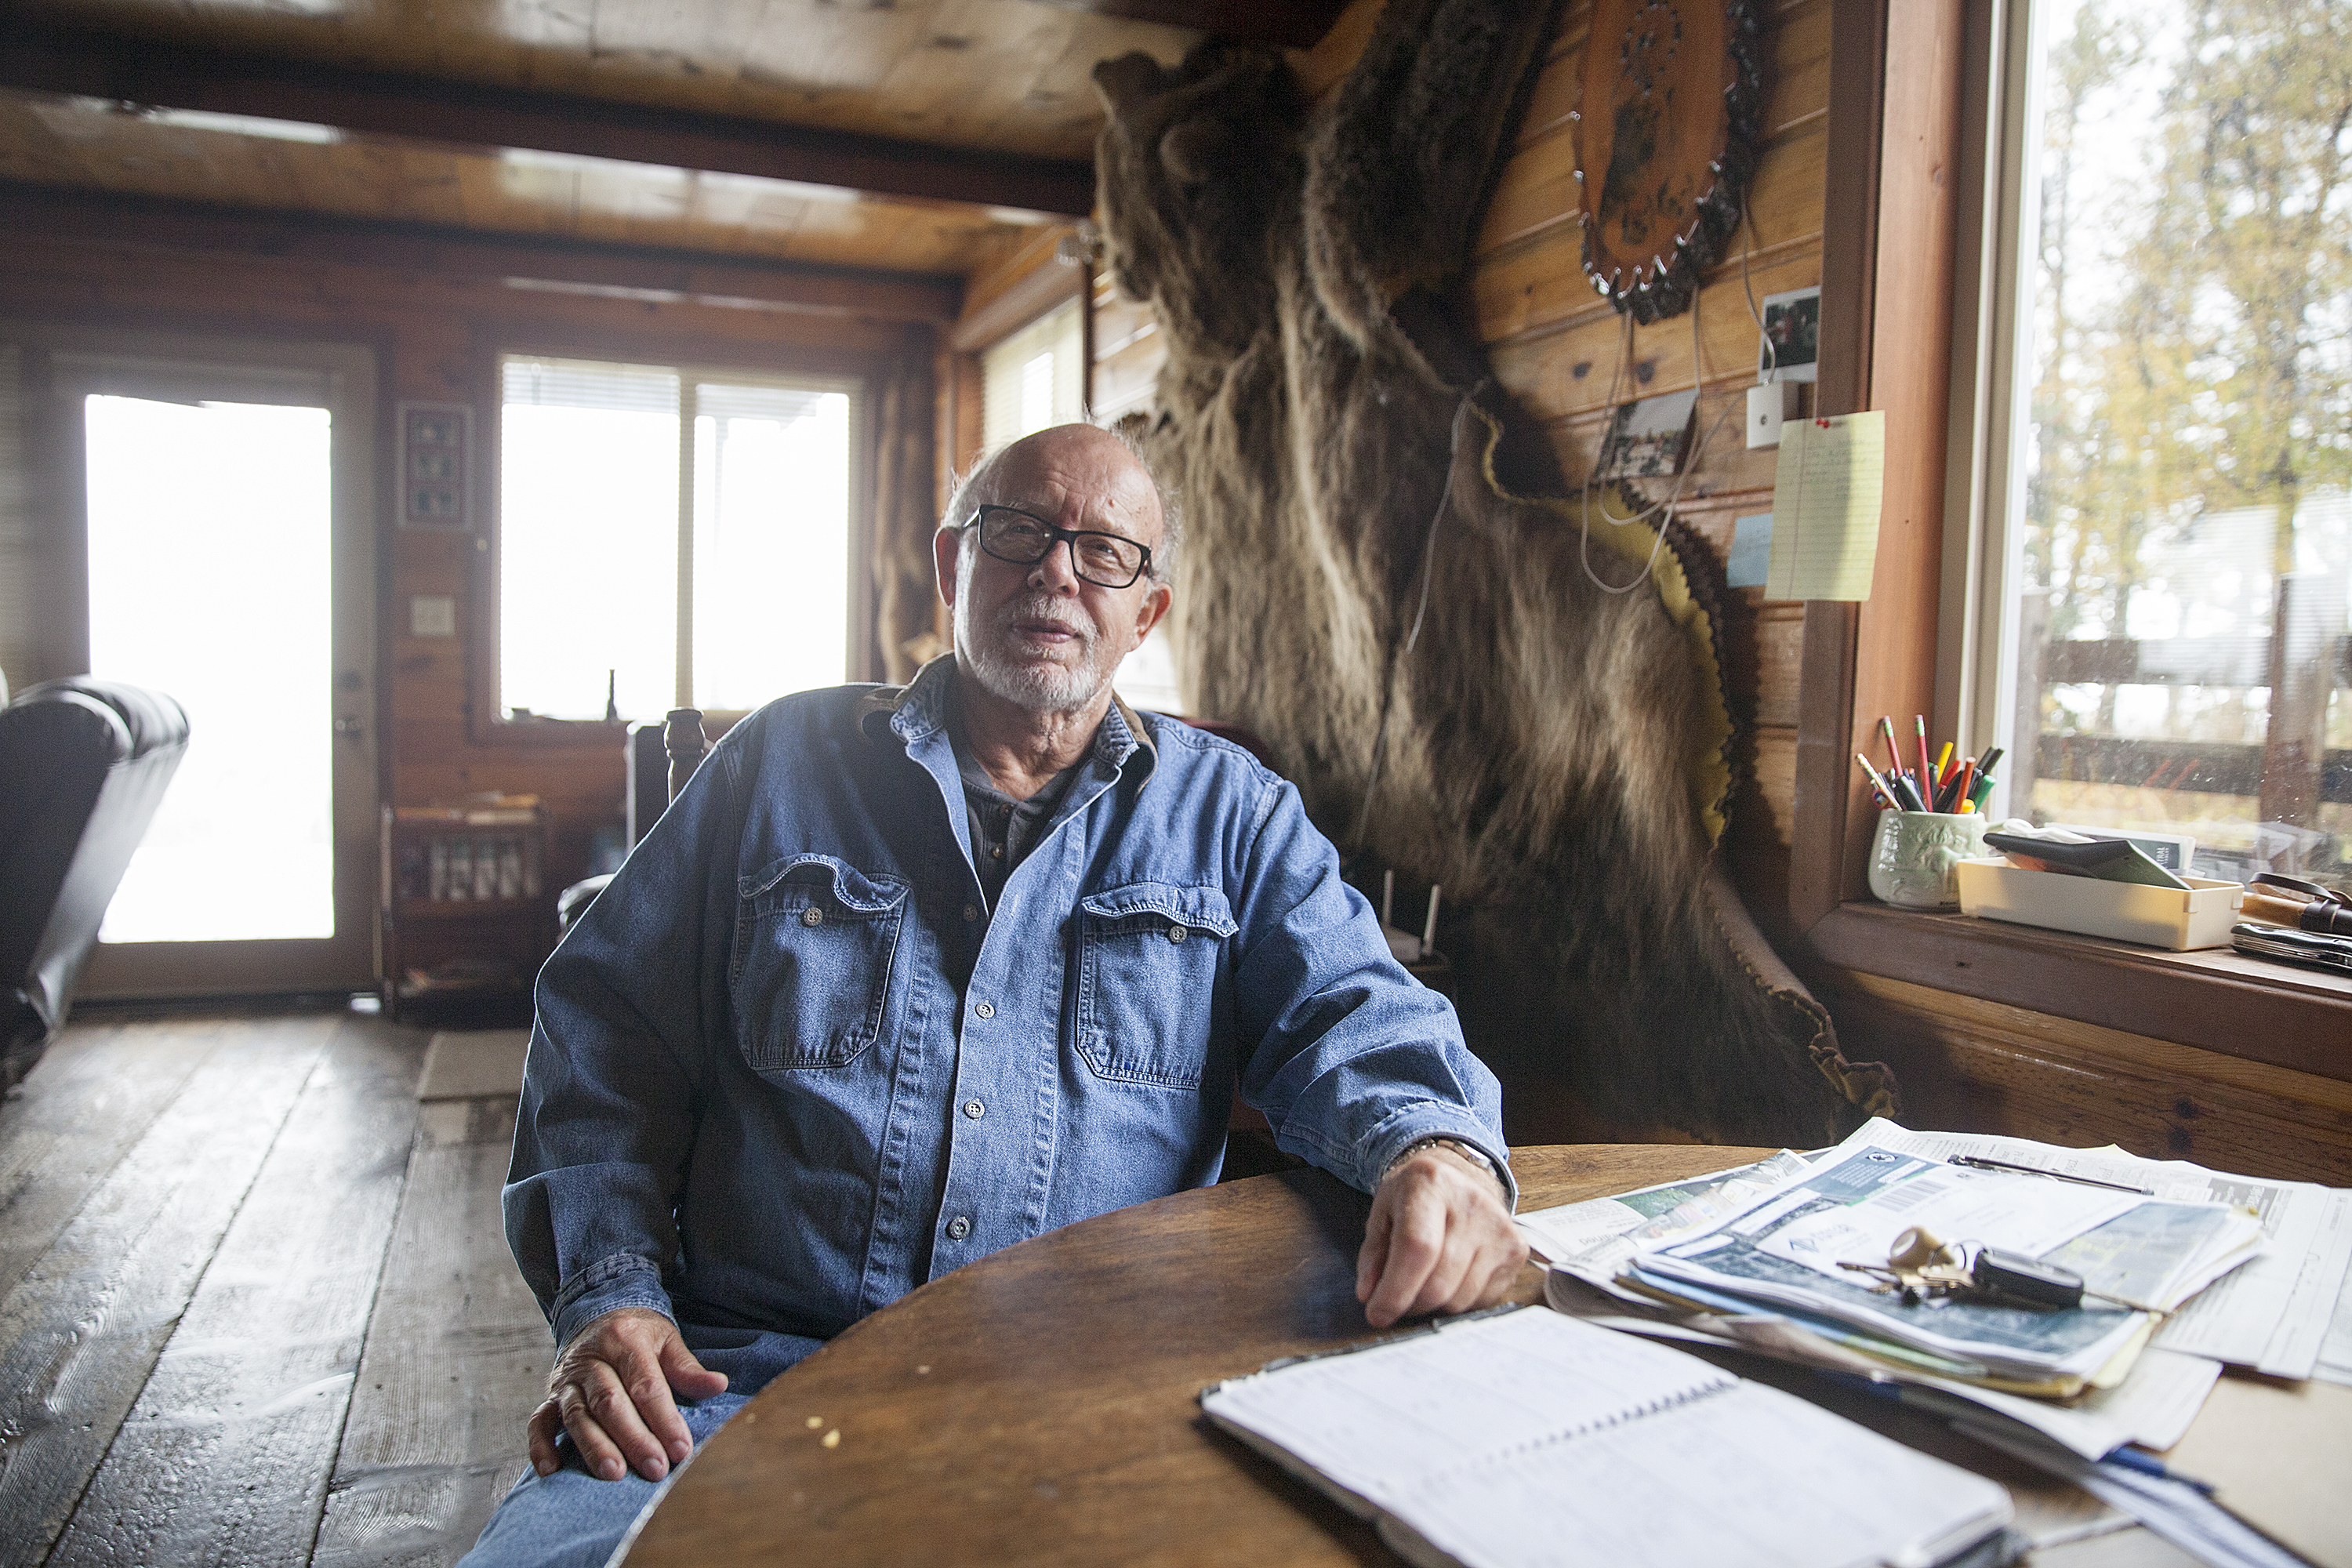 Bill Warren, in the home on land he says he was negotiating to sell to the Alaska LNG project on Sept. 25, 2016 in Nikiski, Alaska. Warren, and others in Nikiski, say they are unsure what will happen to their land as the project transitions to state control. (Photo by Rashah McChesney, Alaska's Energy Desk - Juneau)